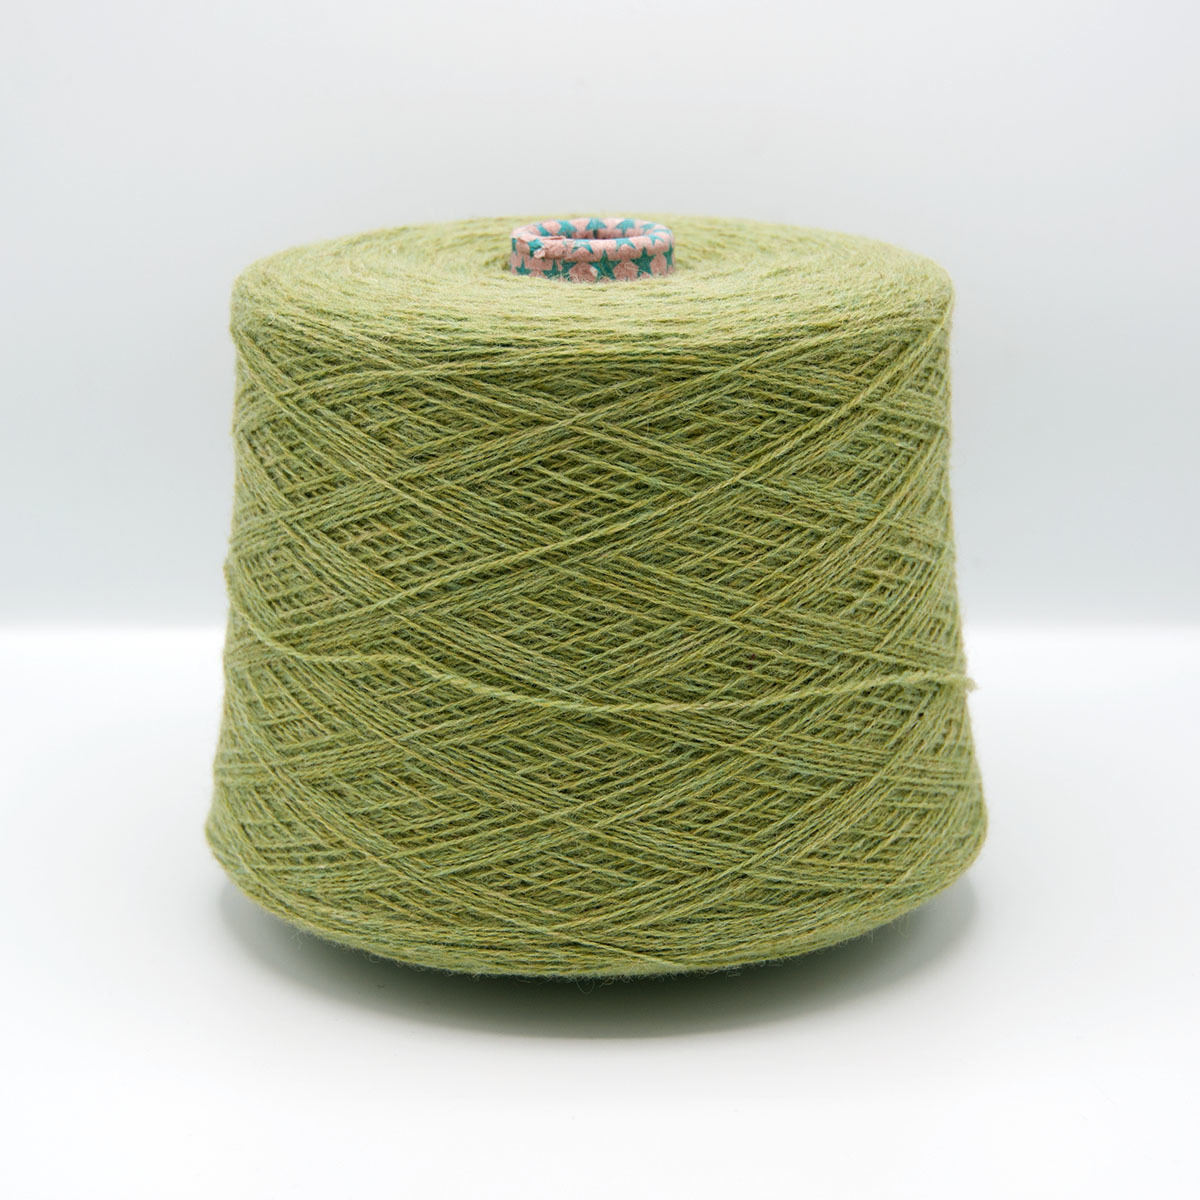 Knoll Yarns Supersoft - 183